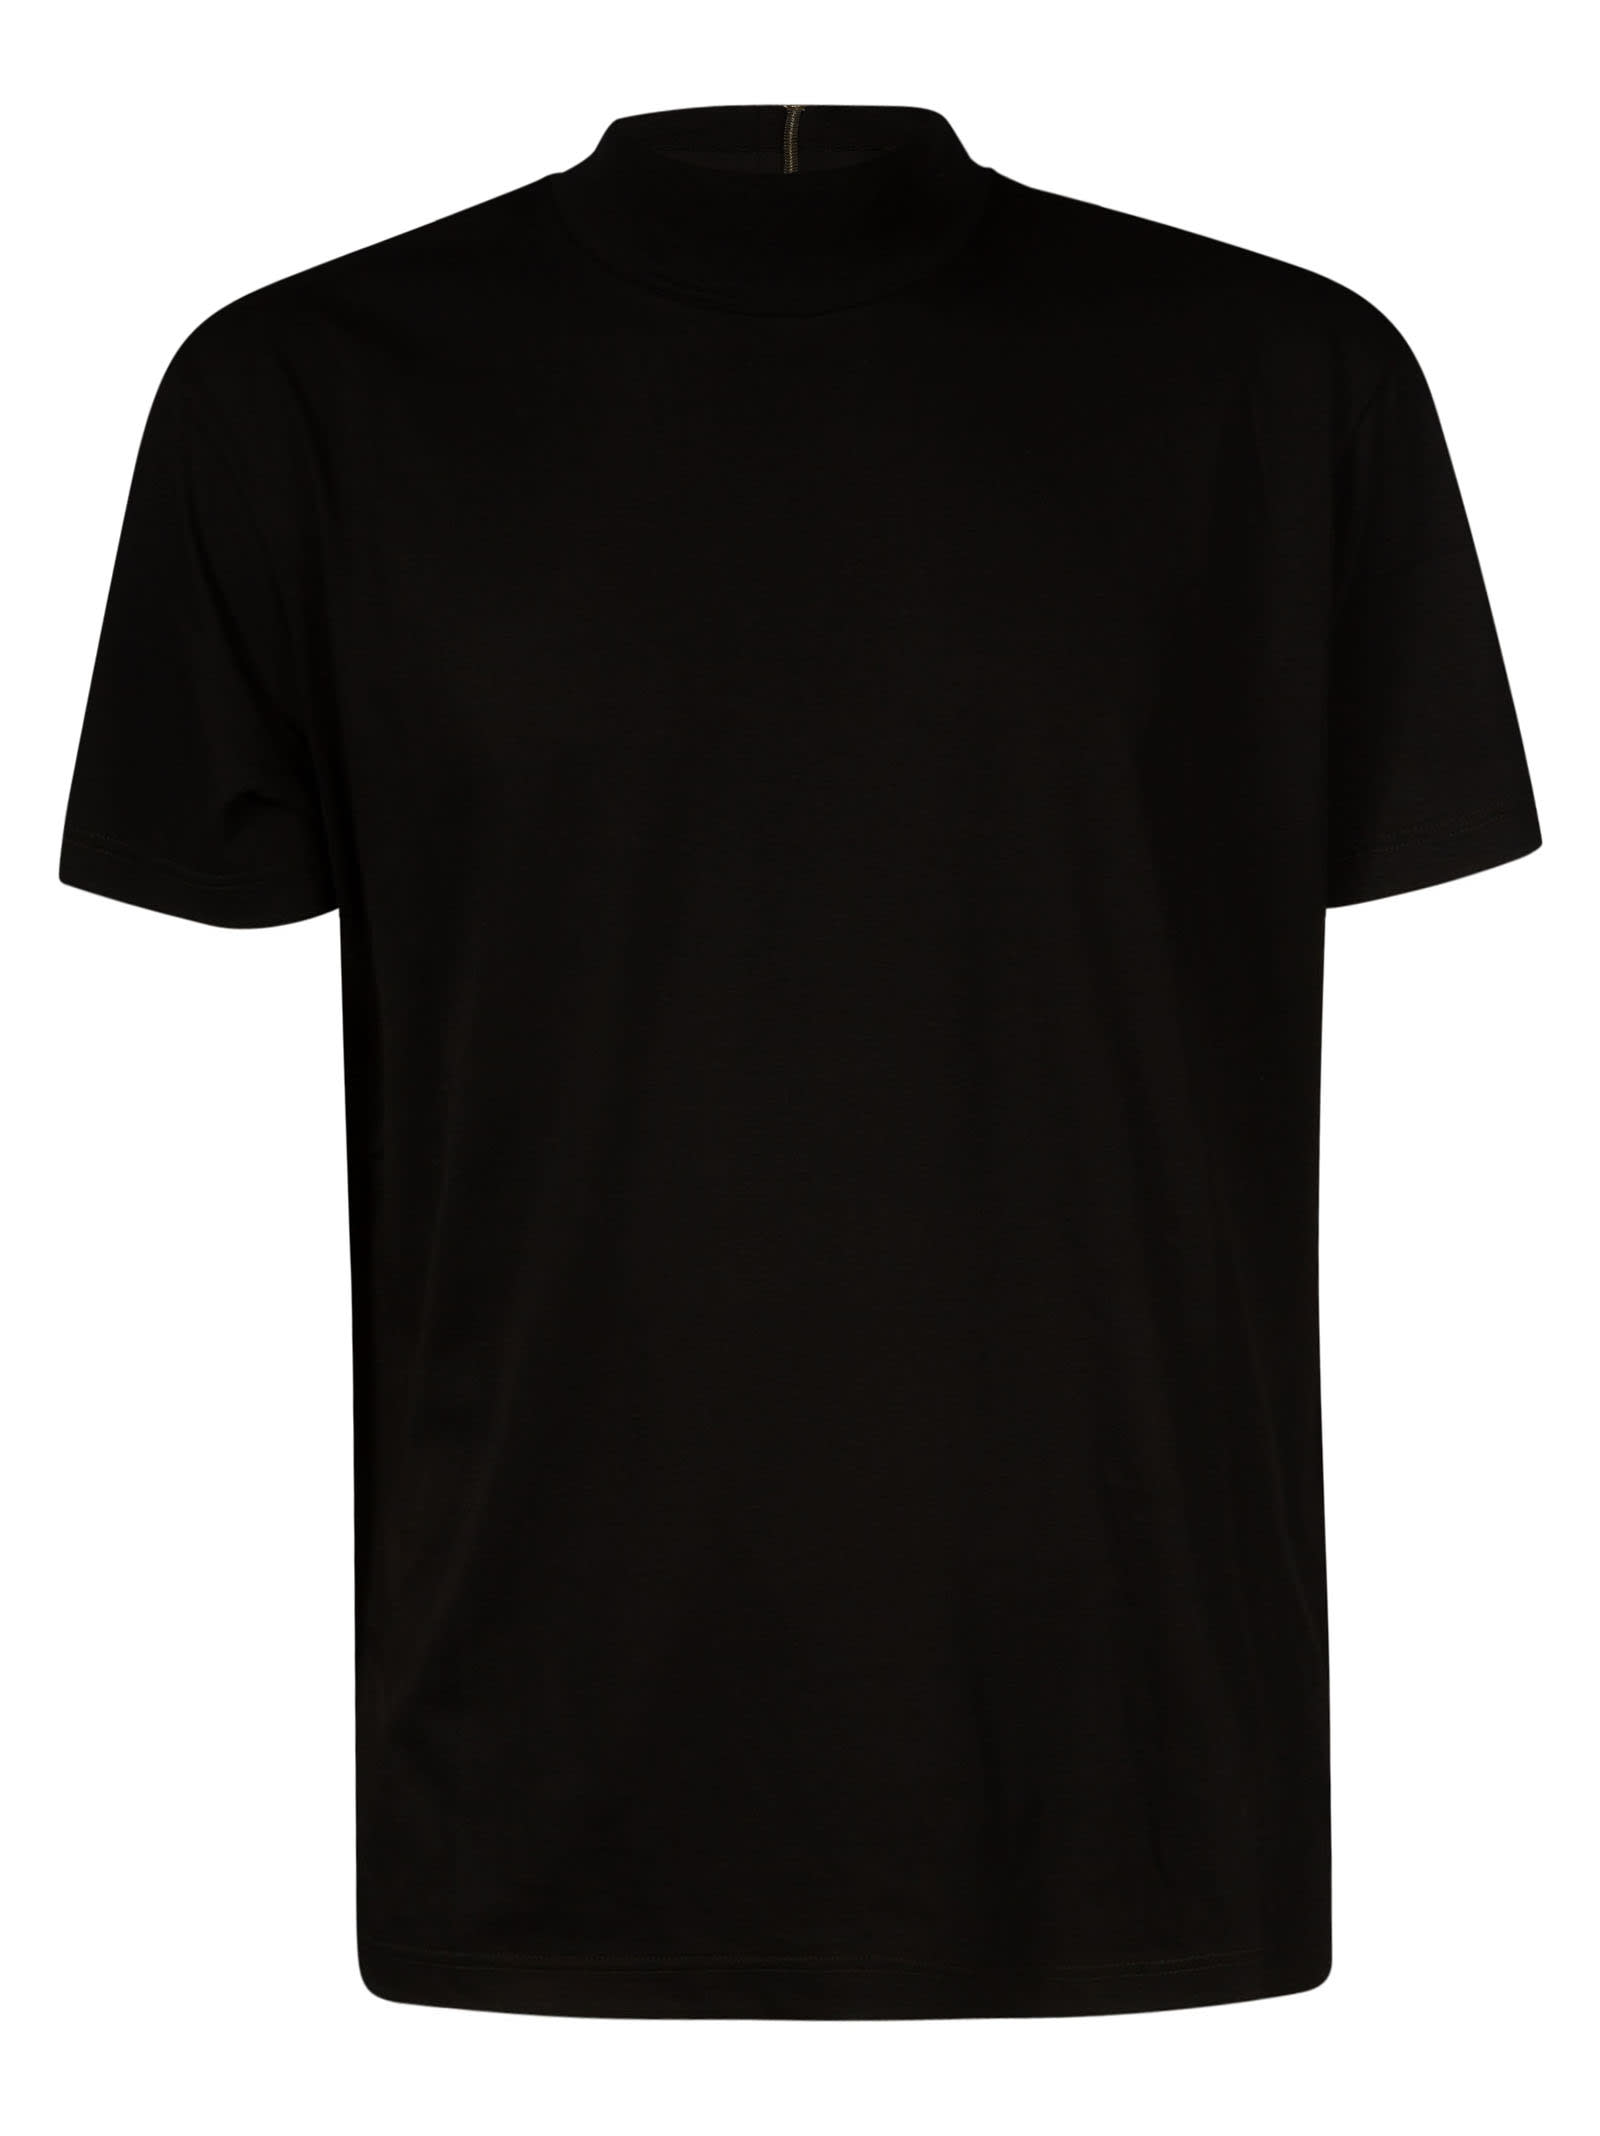 N.21 Back Neck Zip T-shirt